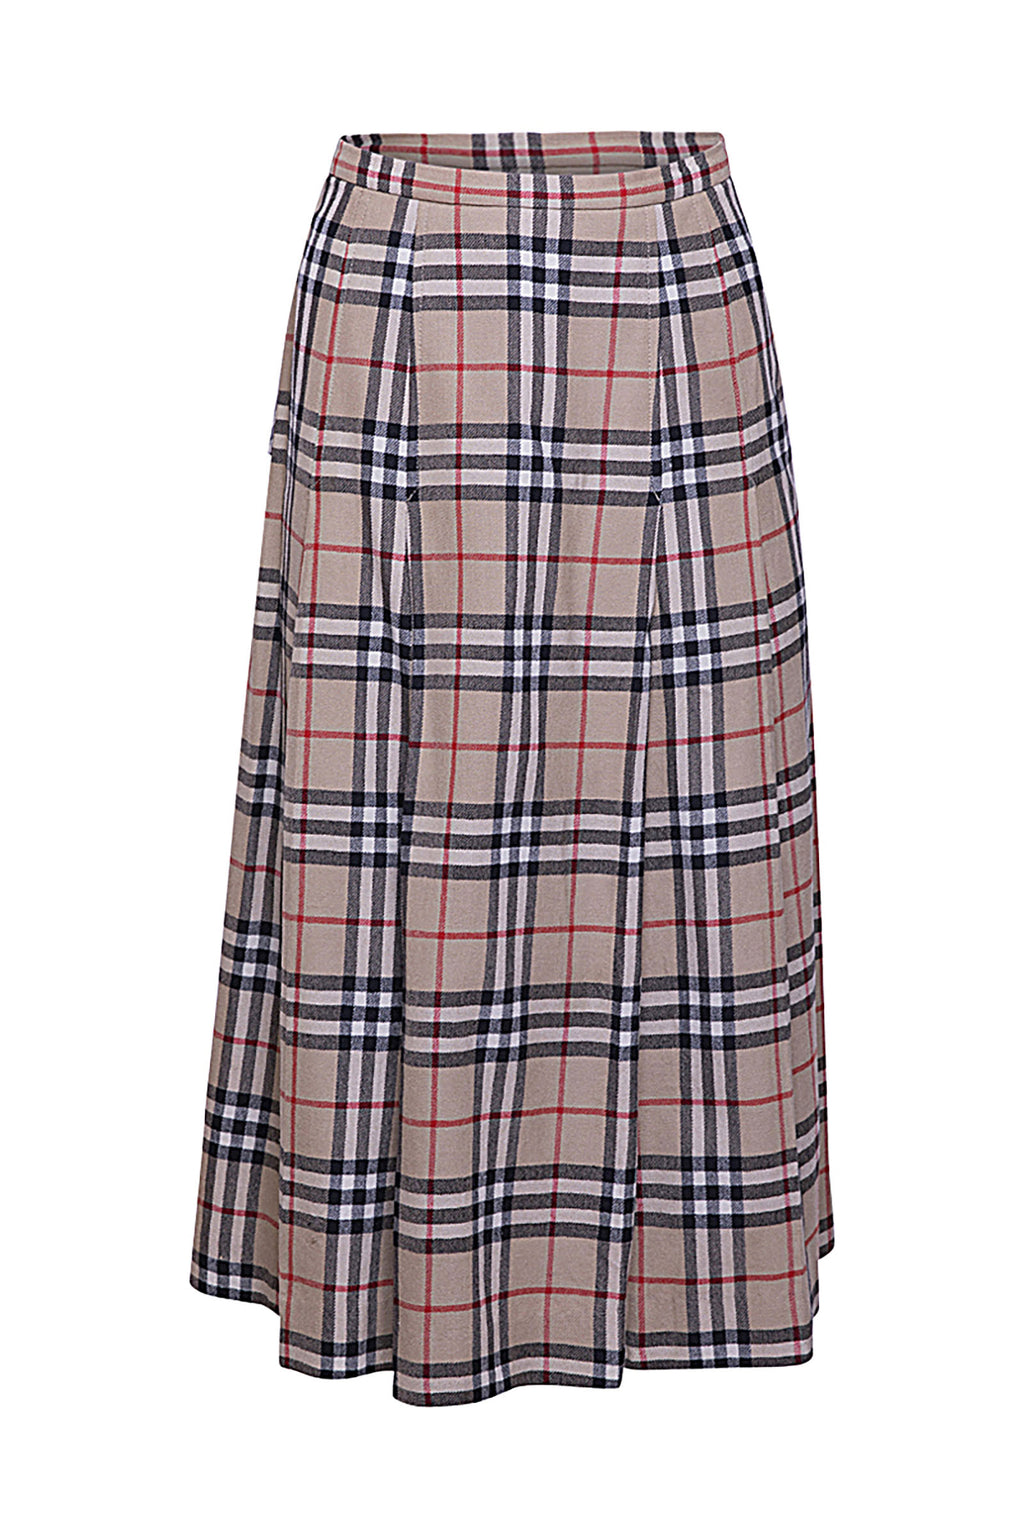 Vintage Burberry Midi Skirt